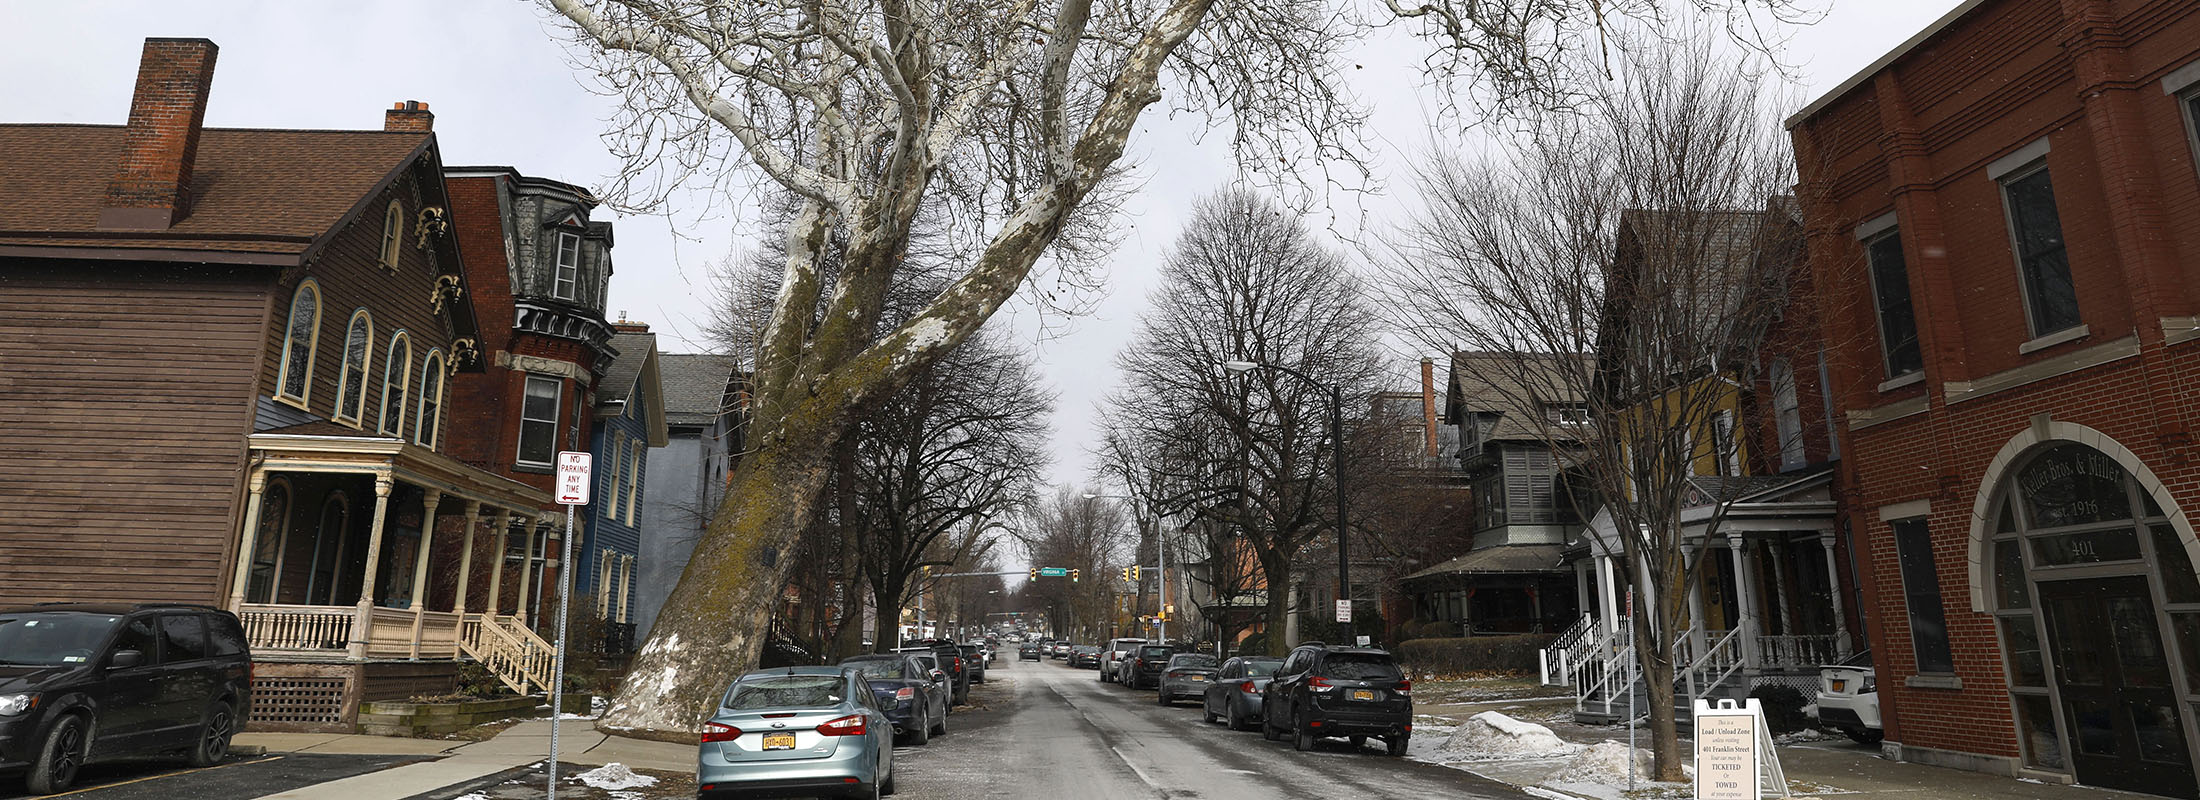 This sycamore tree on Franklin Street near Edward is considered to be the oldest tree in Buffalo. (Derek Gee/Buffalo News)